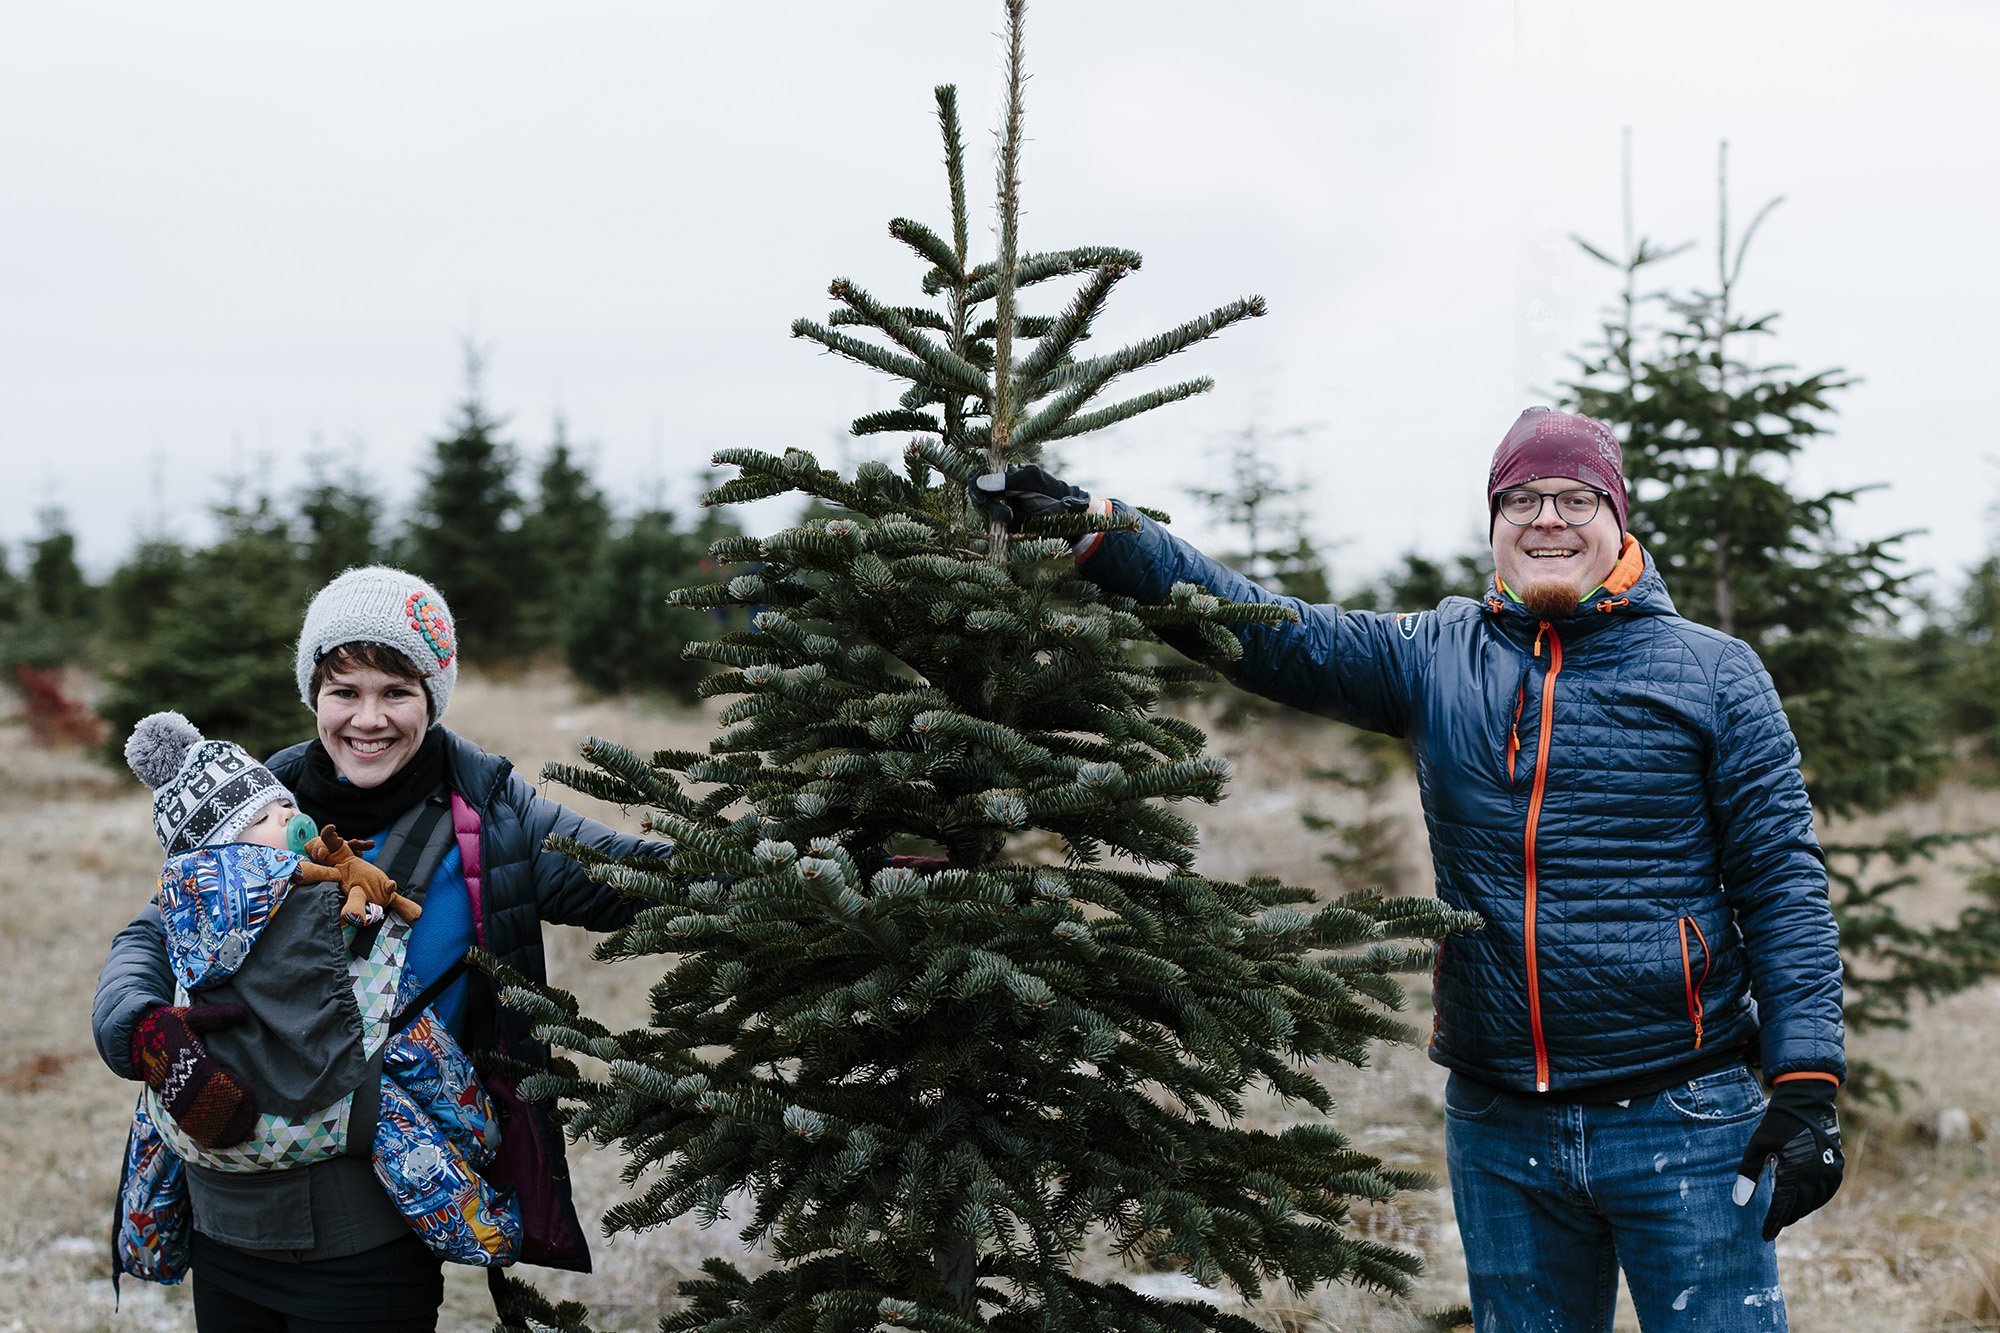 Picking out a tree at Greenbluff Christmas Tree Farm in Spokane Washington